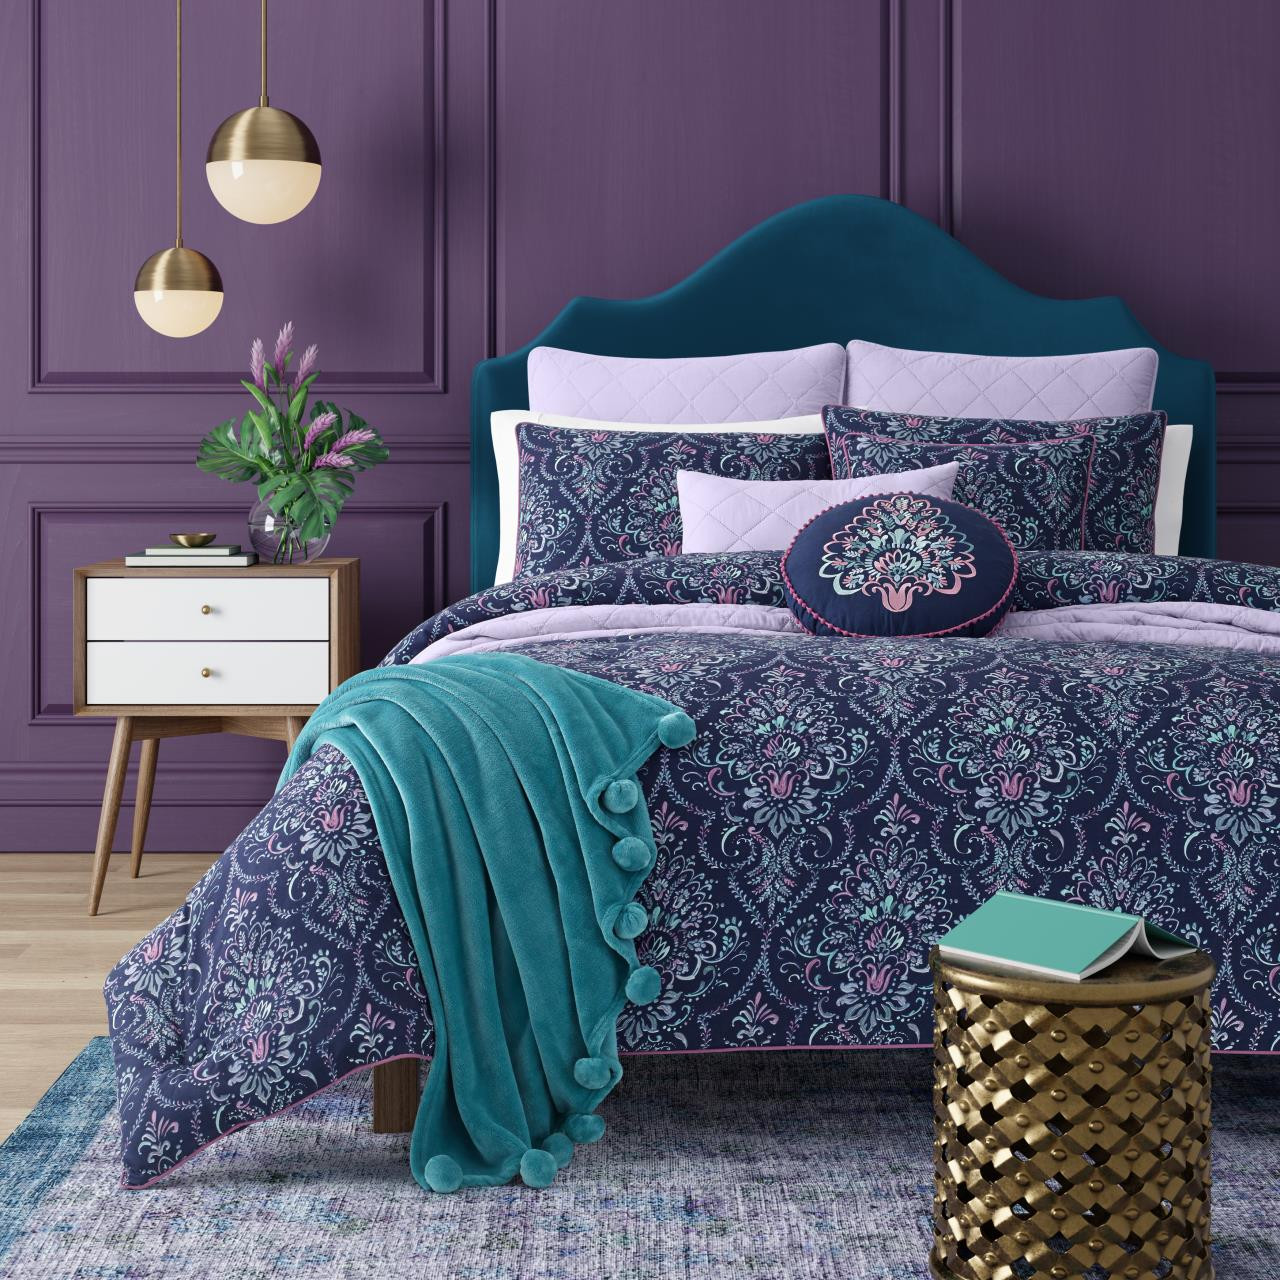 Kayani Indigo Mini Comforter Set - 846339096174